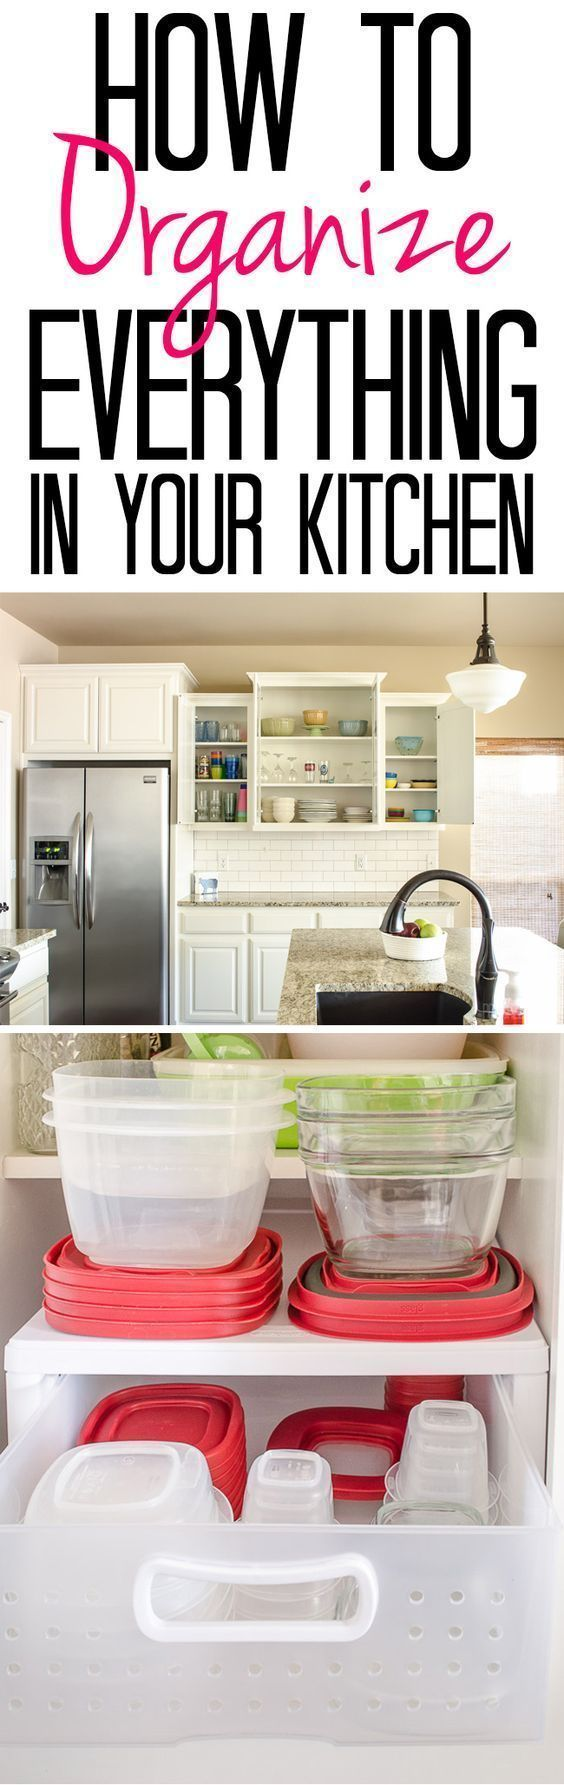 How to Organize Everything in Your Kitchen